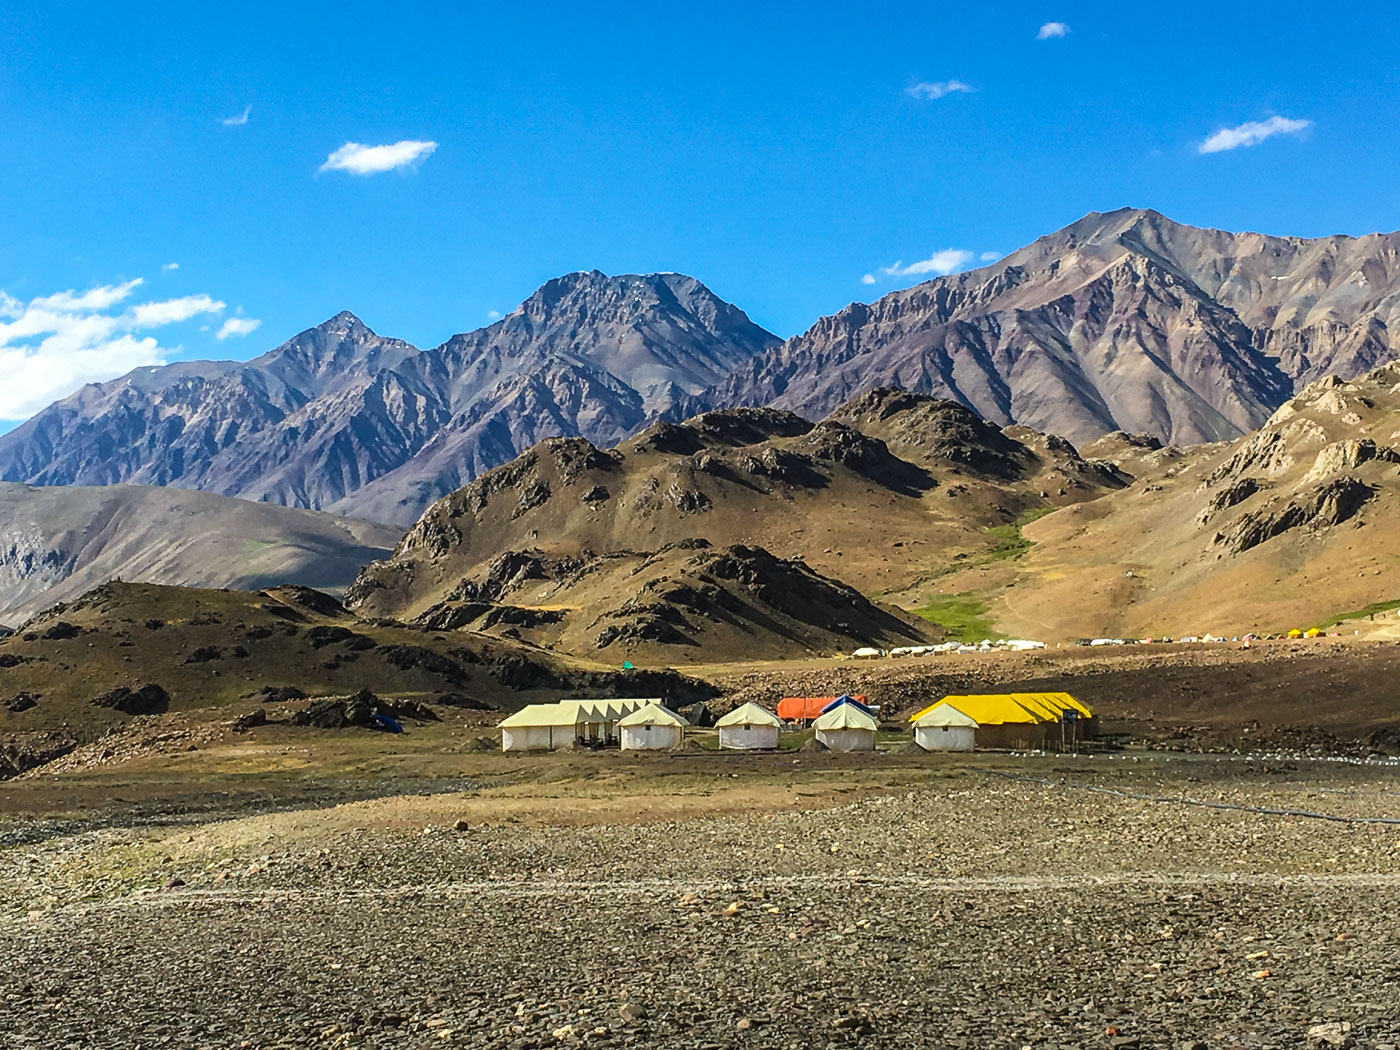 Spiti_Valley_Himachal_Pradesh_India_Kinnaur_Kullu_Manali_Road_trip_mountains_winter_Buddhist_Monastry_Sassy_Pilgrim_Travel_Blog_female_Blogger_Solo_Tips